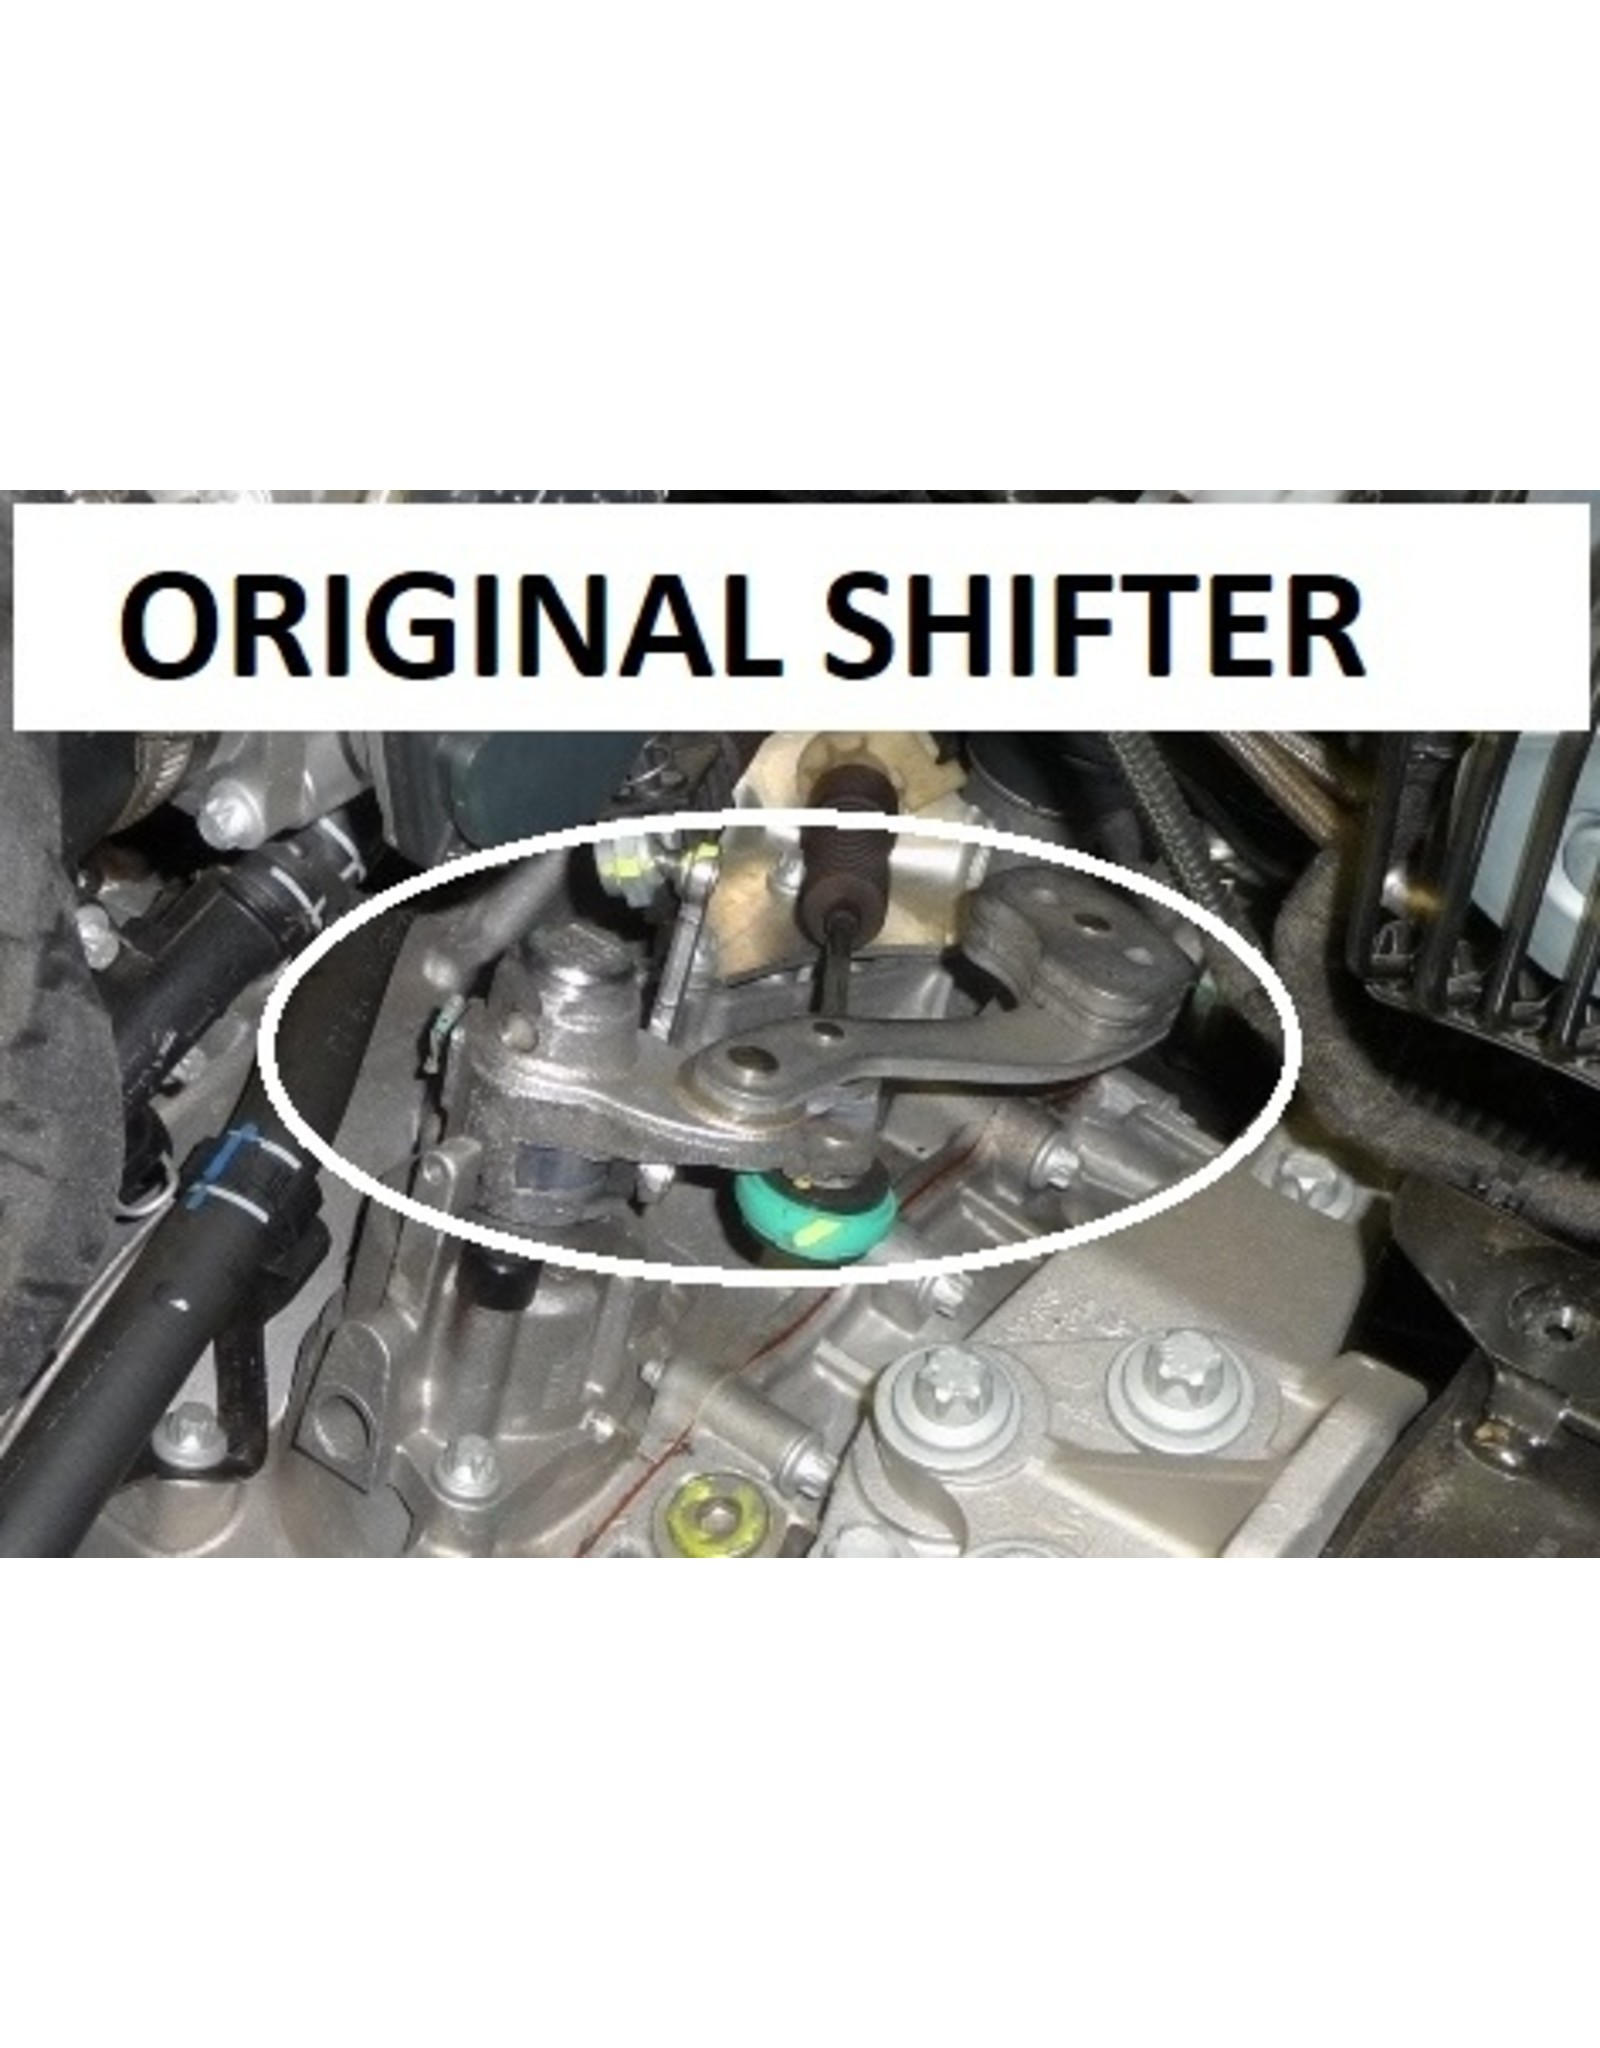 4H-TECH short shift type Q2-Shift for the M20 and M32 transmissions (05-2016 and younger)